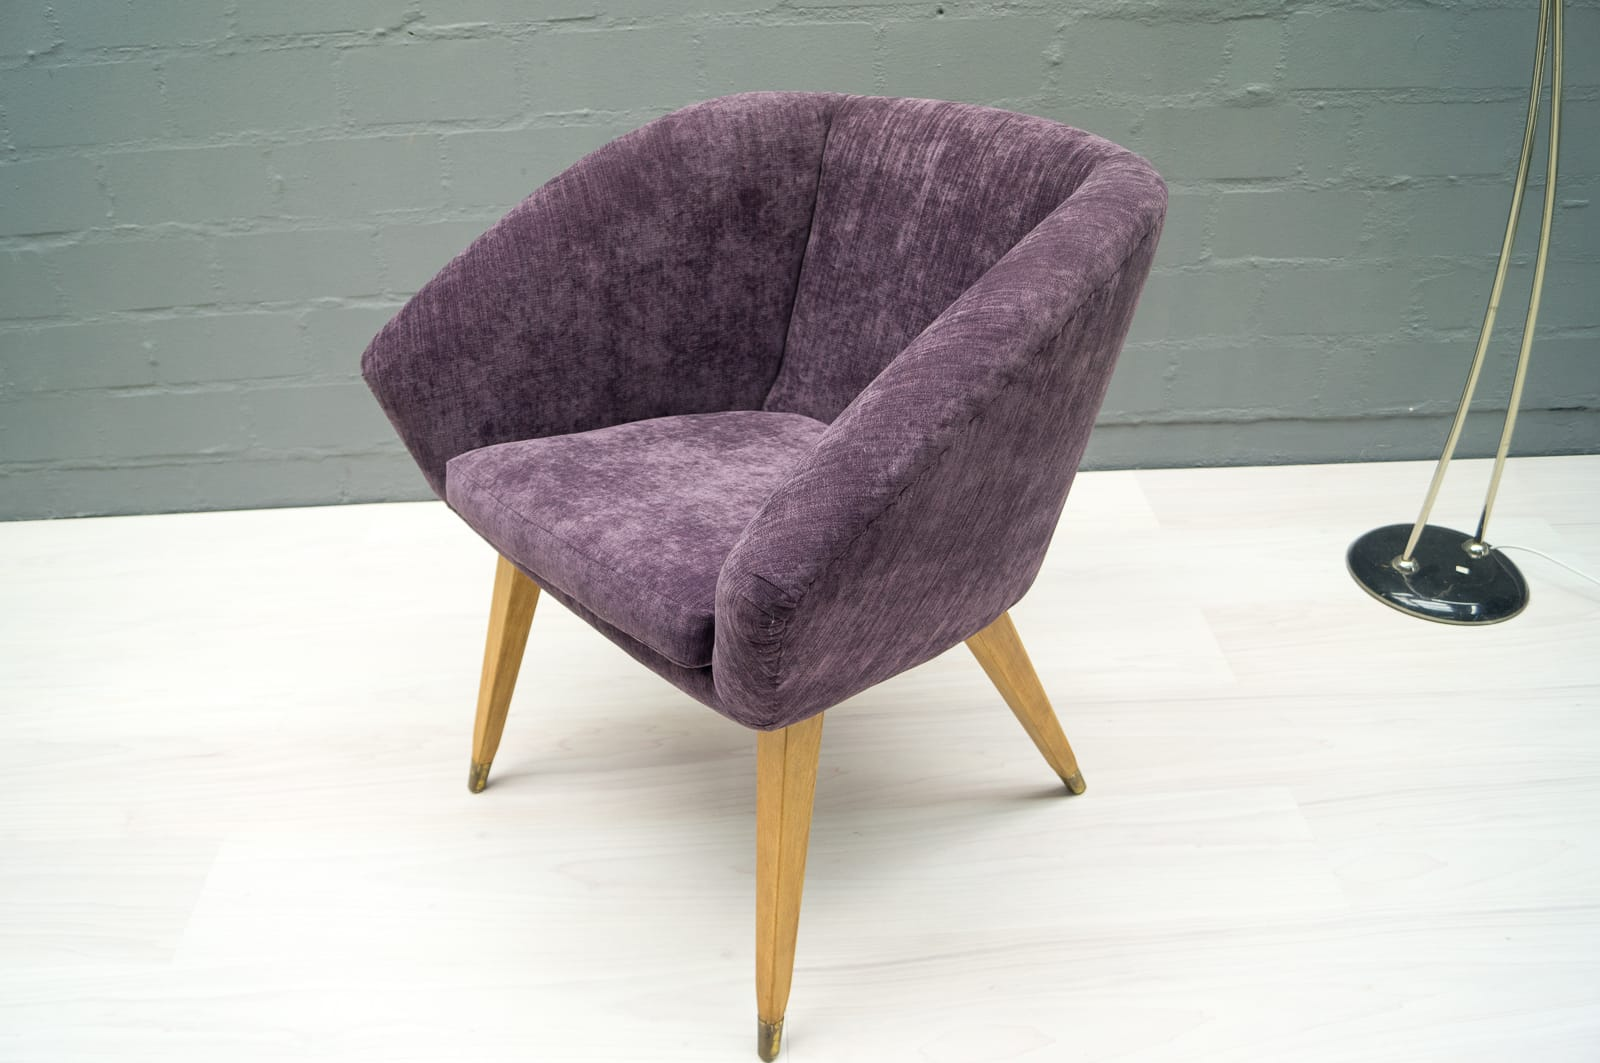 Lounge Sessel Lila Sessel Lila Trendy Lila Sessel Lila Sessel Awesome Willi